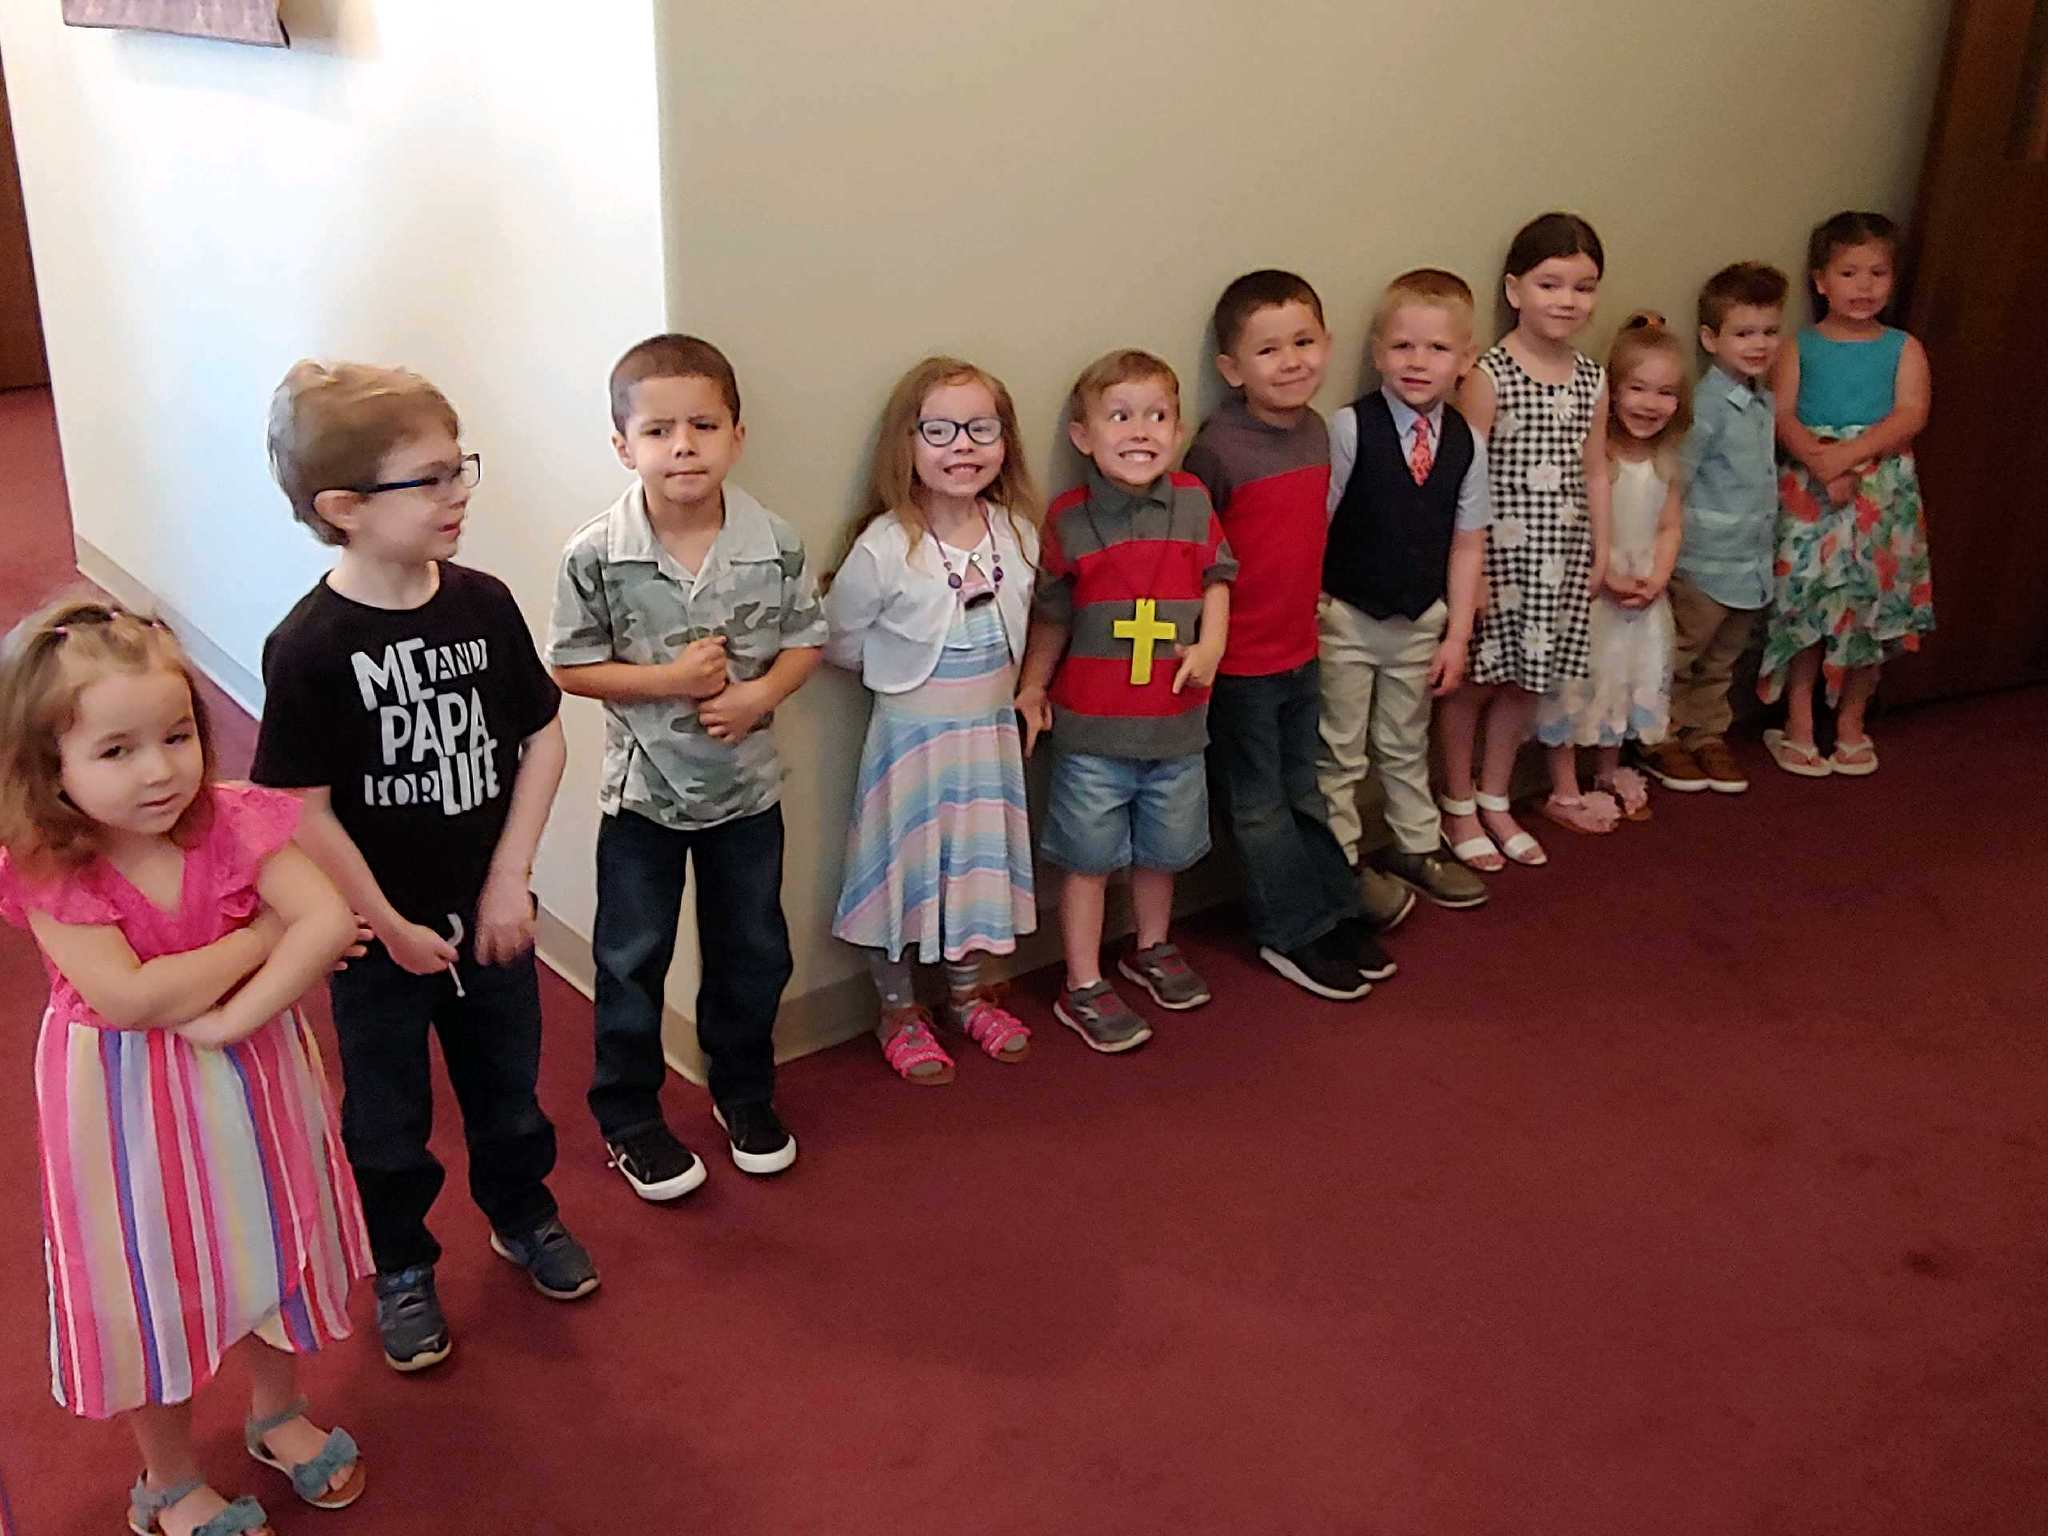 childrens ministry 2.jpg